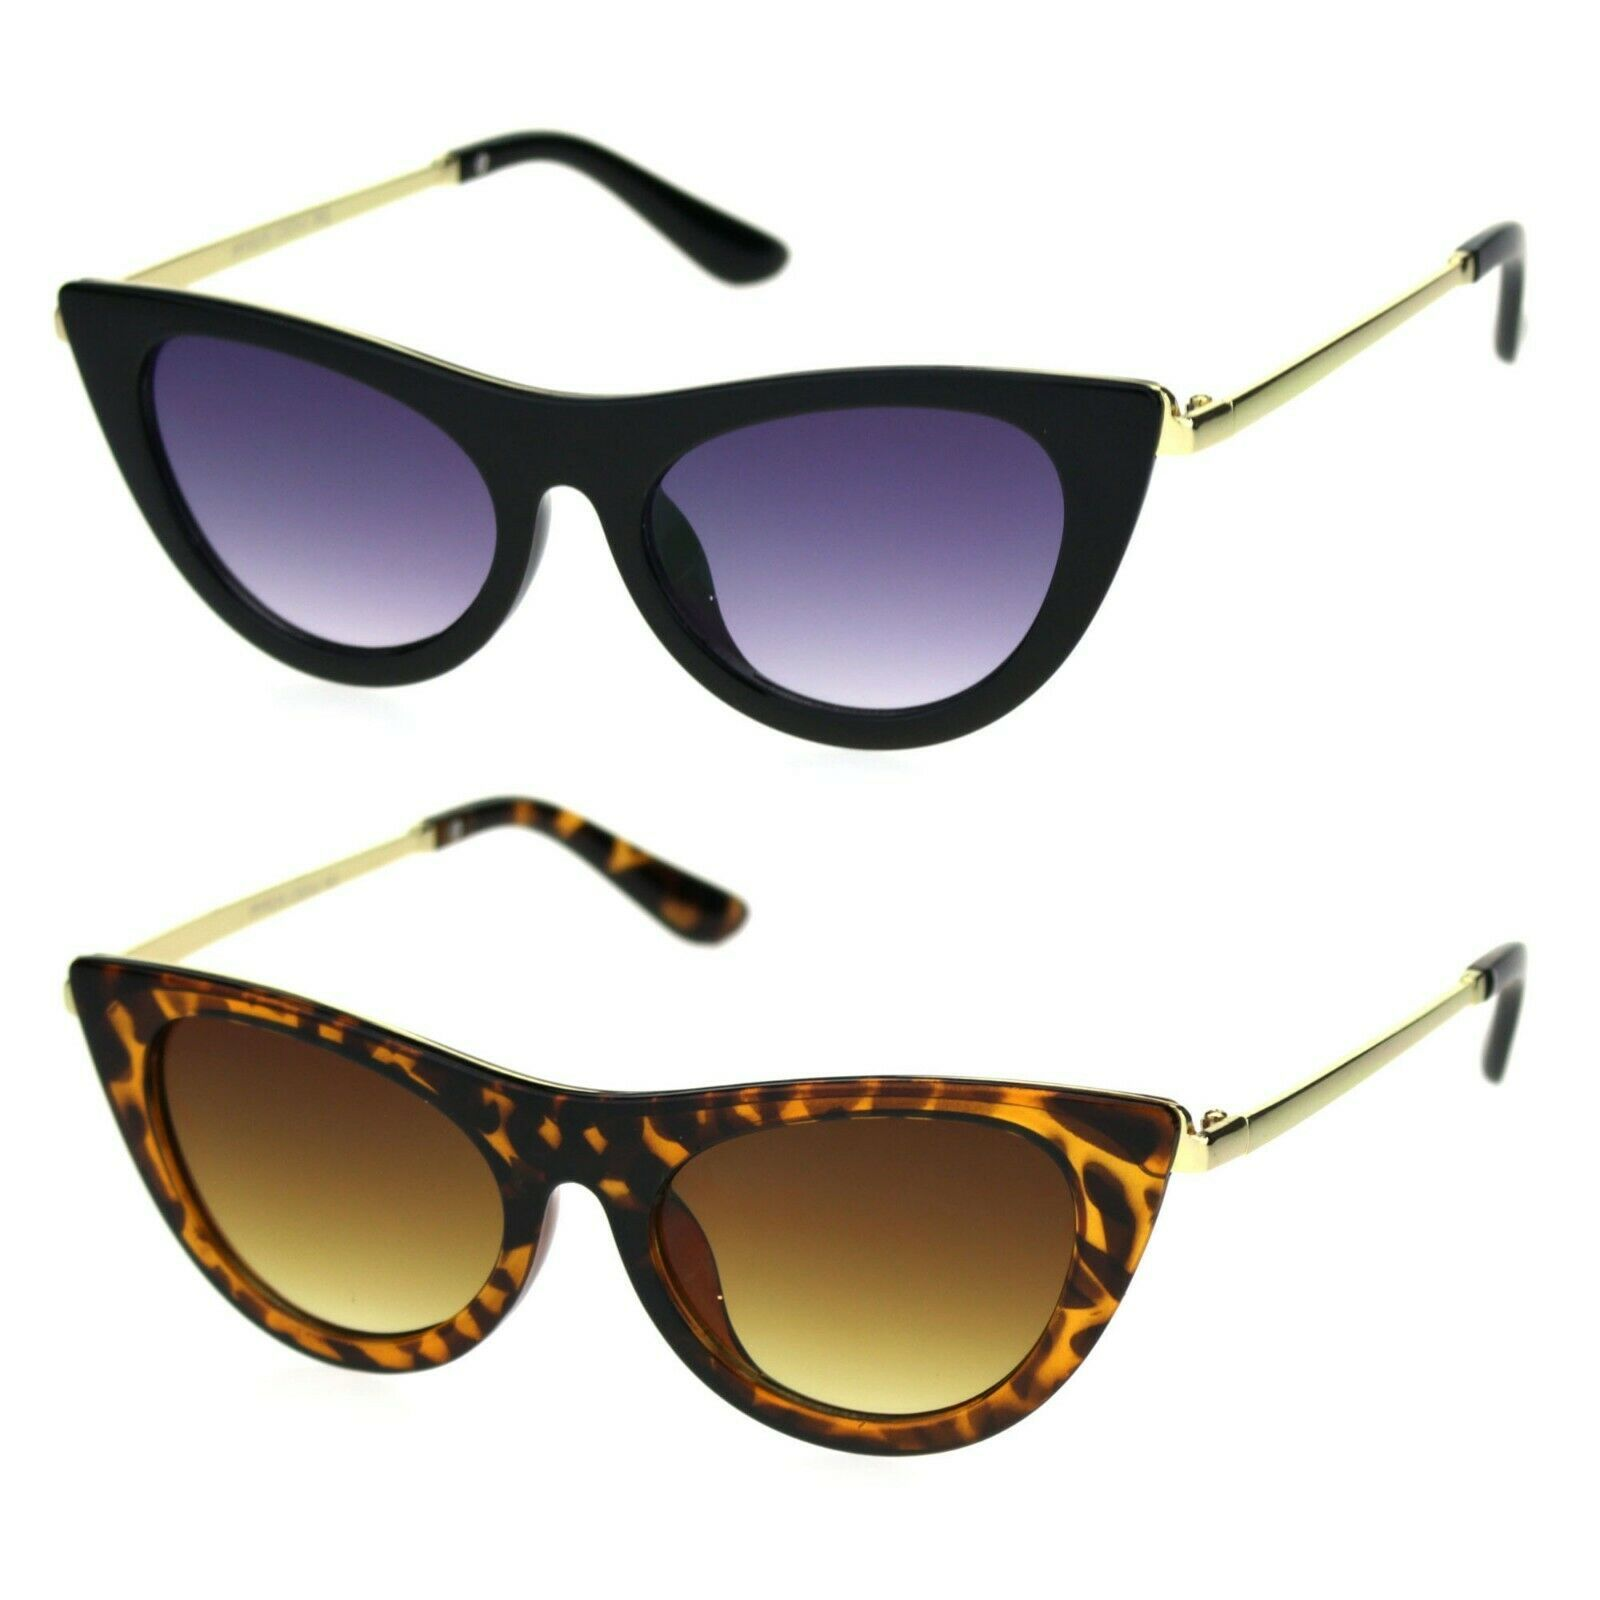 Womens Mod Metal Arm Chic Gothic Plastic Cat Eye Sunglasses